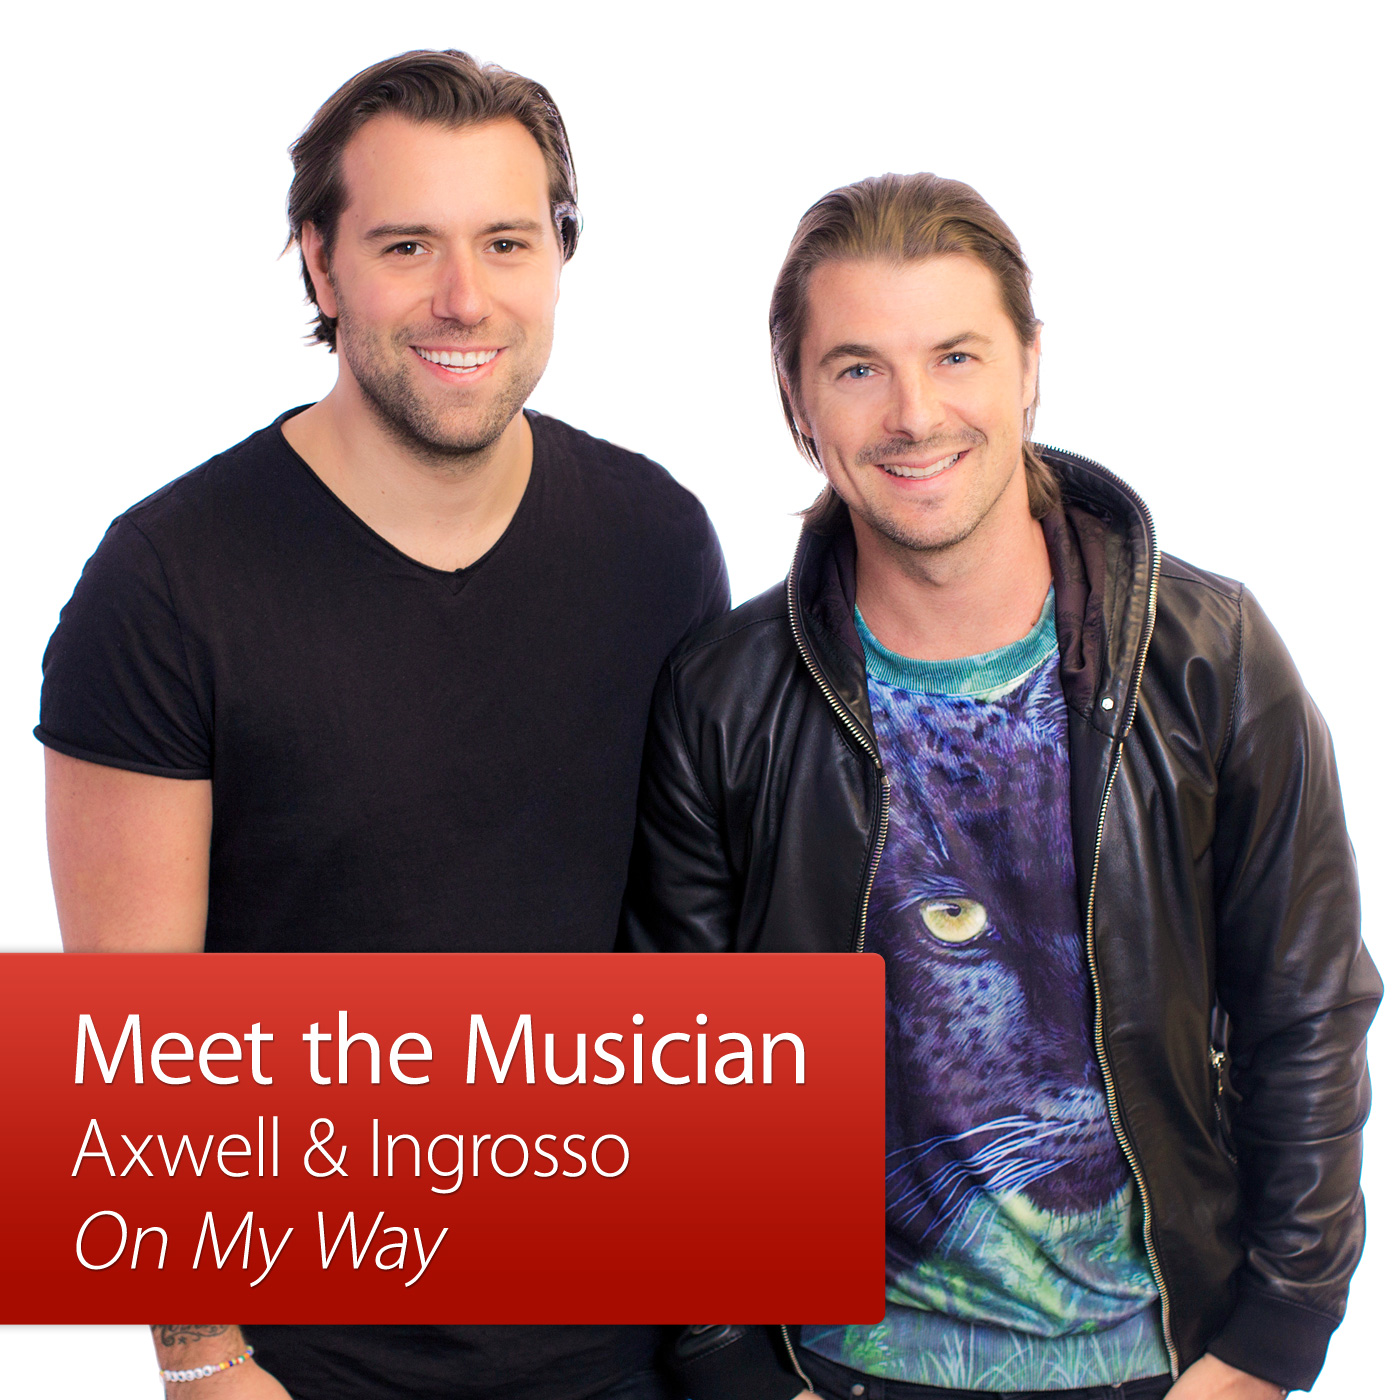 Axwell & Ingrosso: Meet the Musician